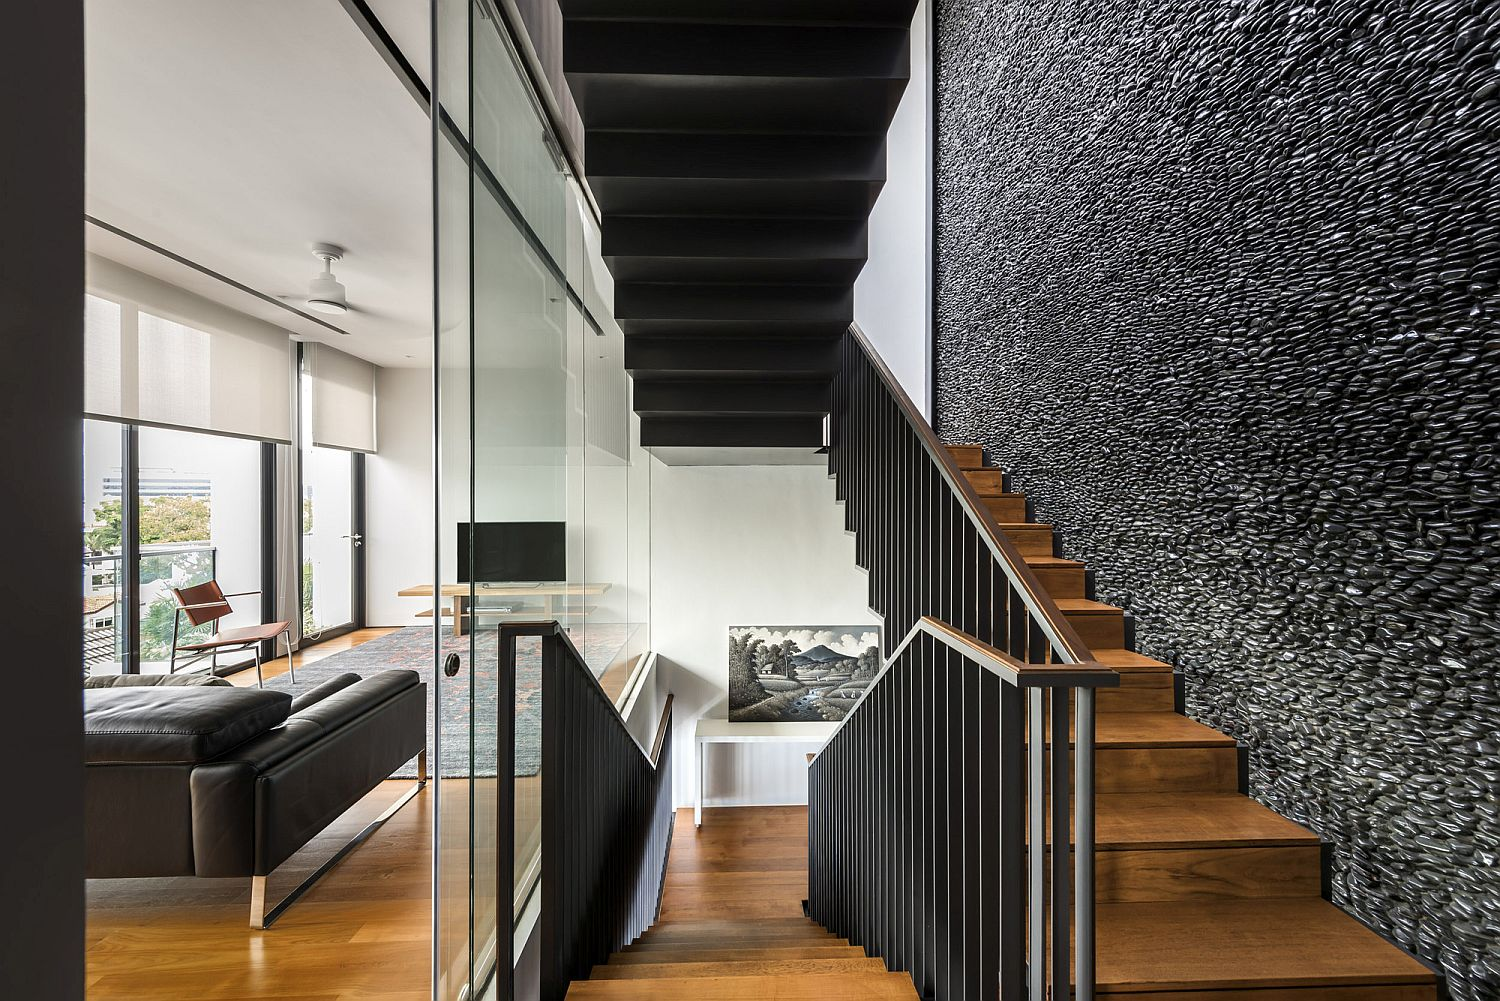 Polished Feature Wall With Black River Pebbles Captivates